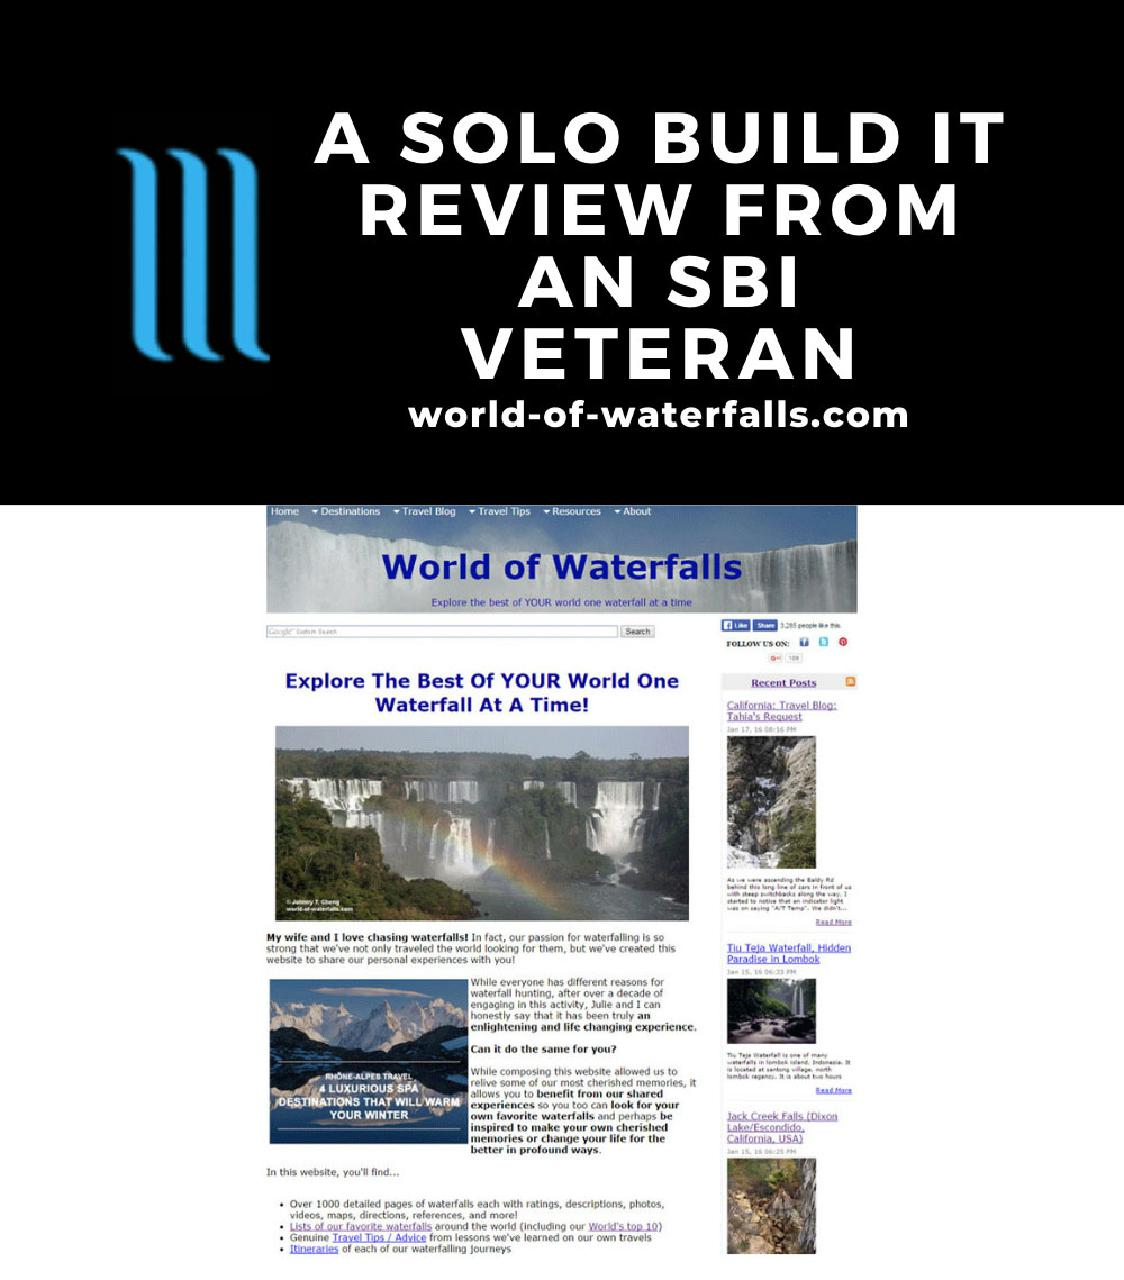 How the World of Waterfalls website looked when it was hosted and built on the Solo Build It (Site Build It) platform